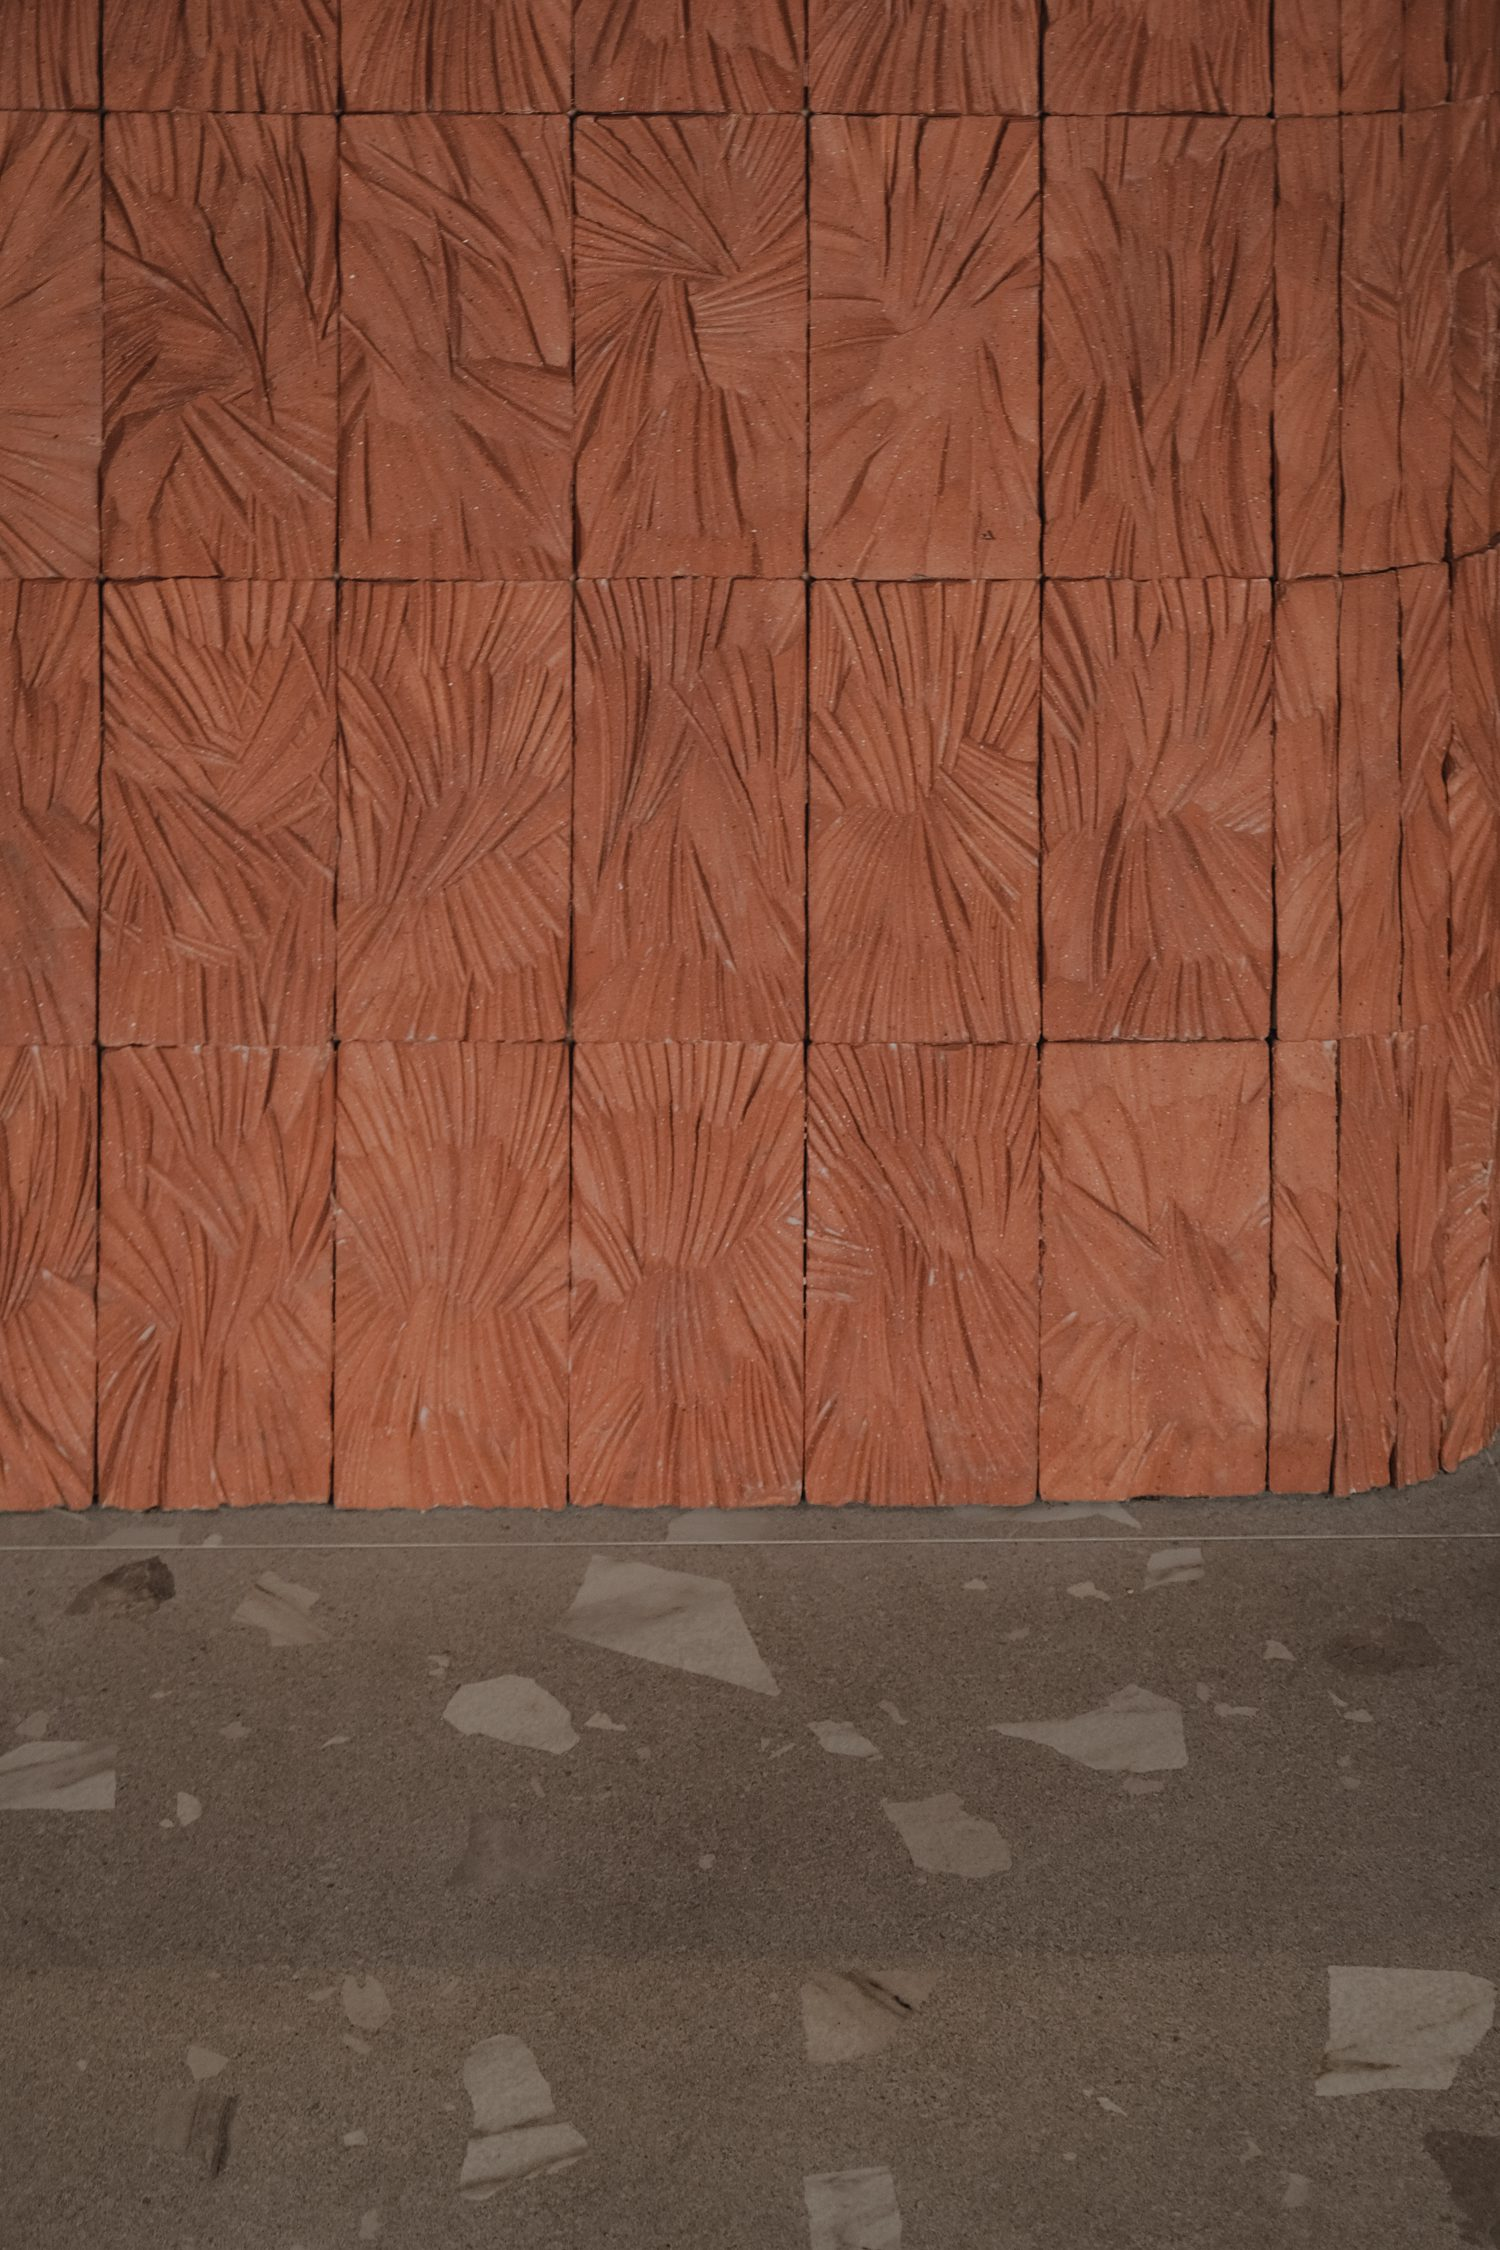 Materiolab fabricated the highly-textured brick tiles